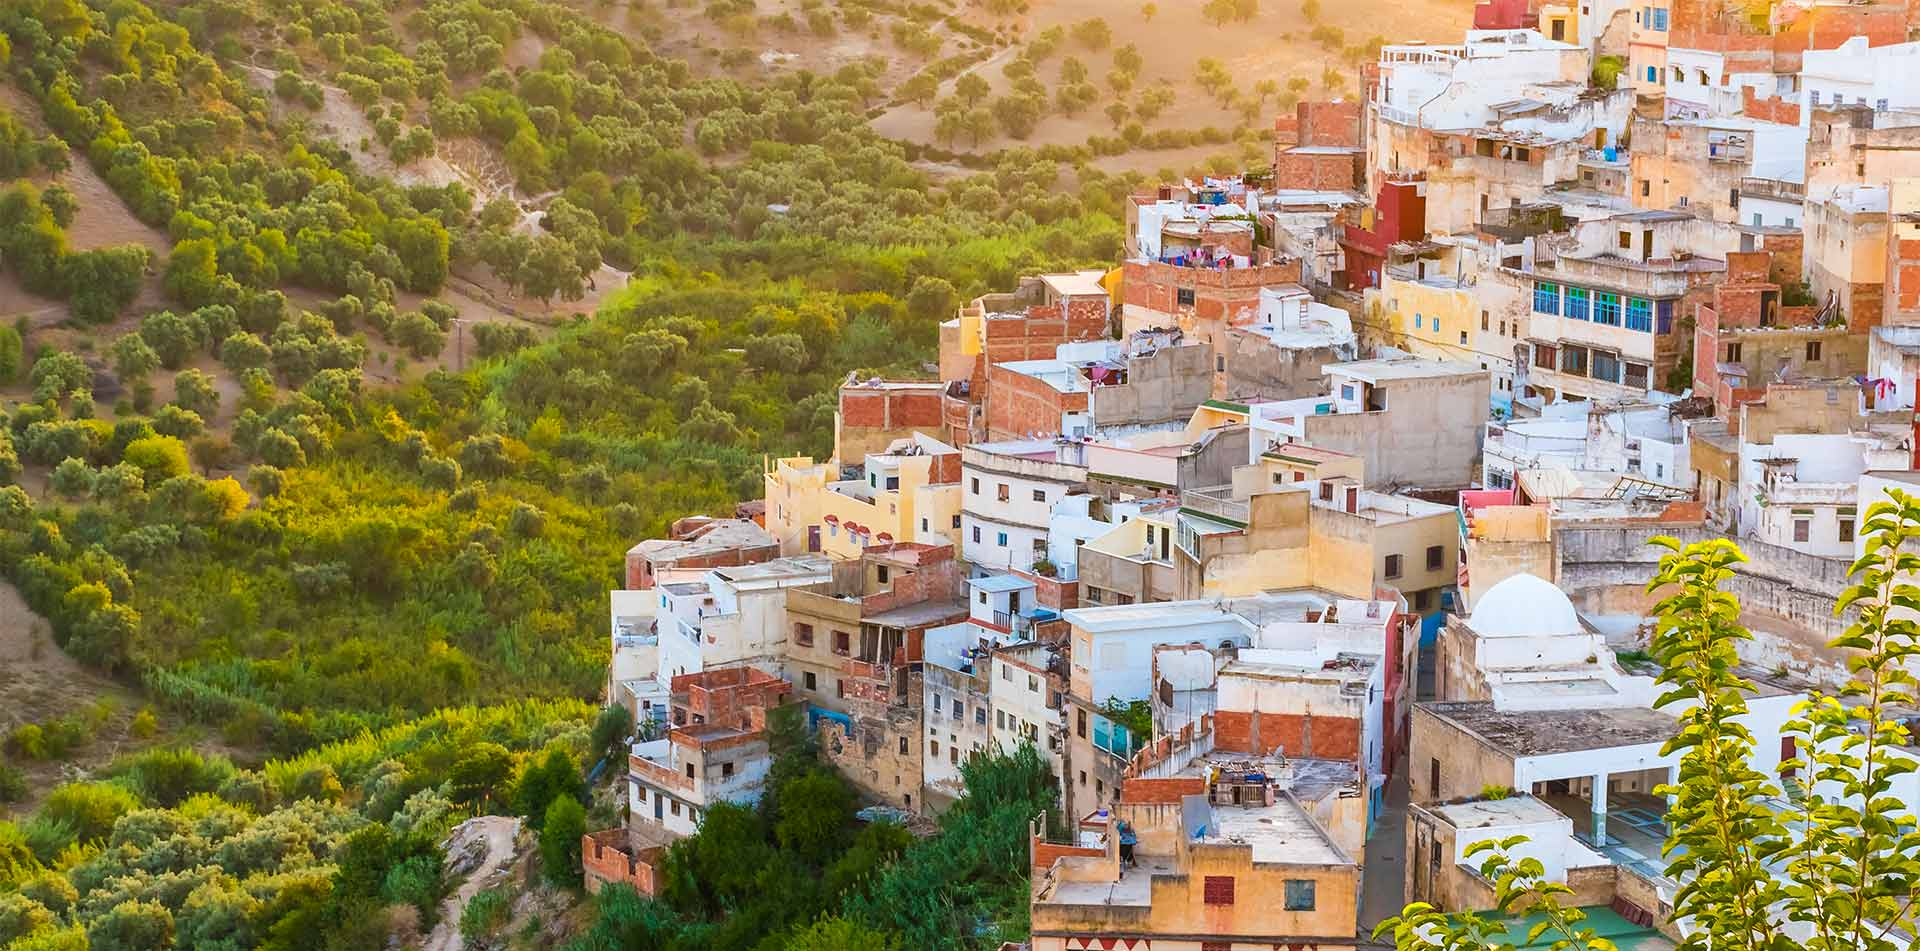 Africa Morocco Moulay Idris historic colorful holy city aerial view at sunset   - luxury vacation destinations